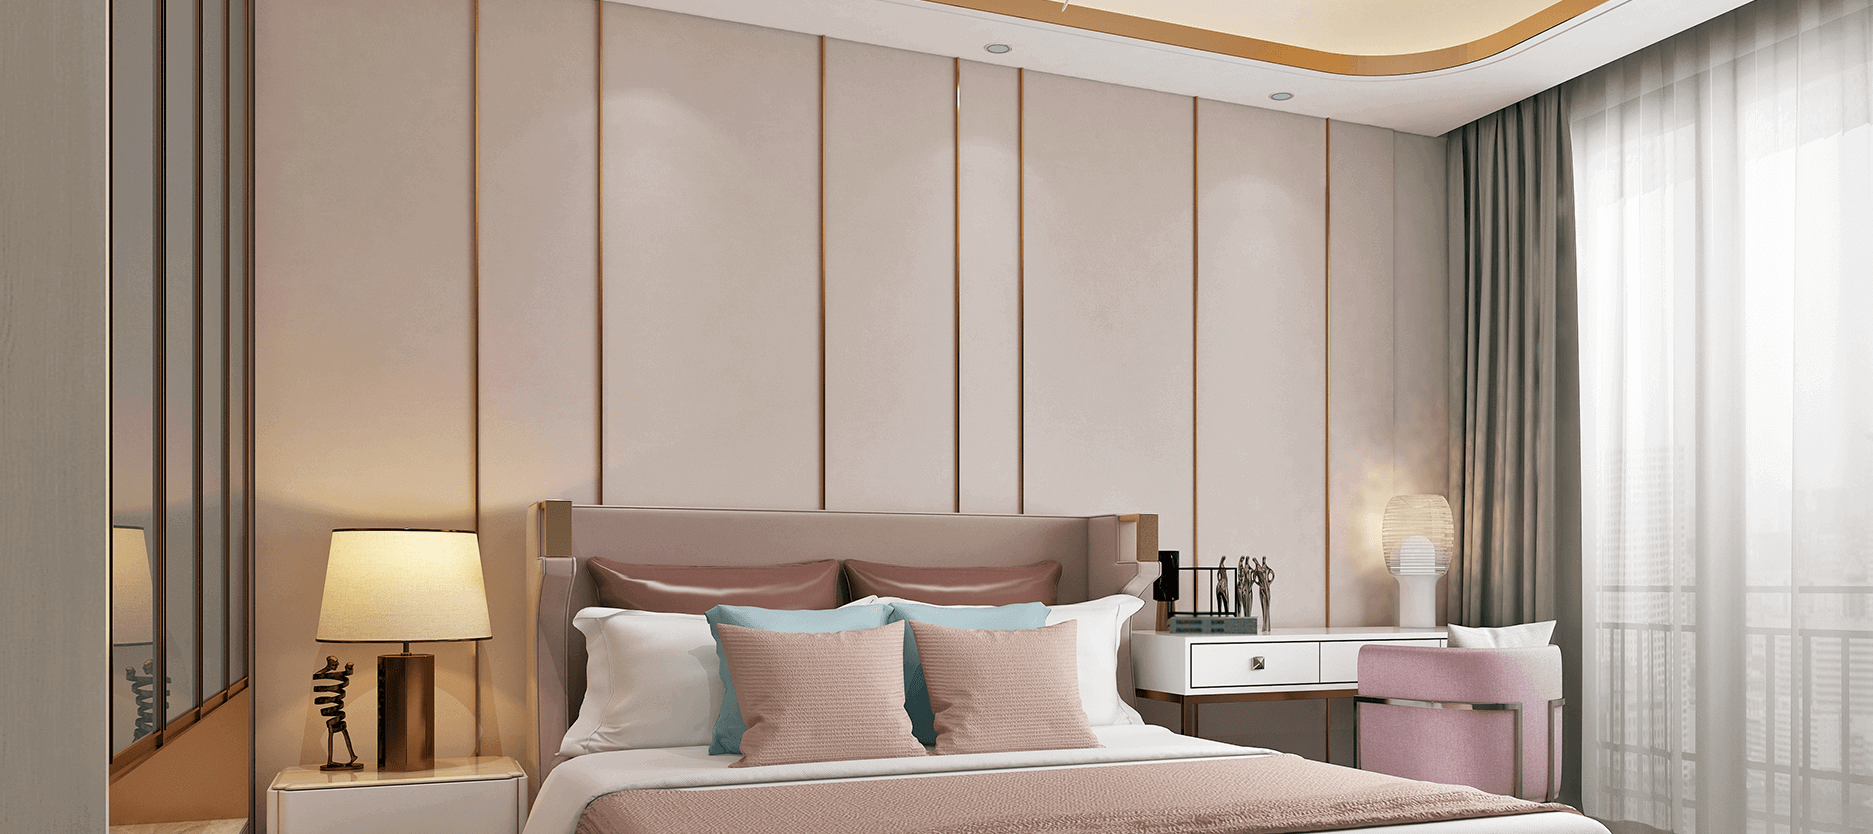 How To Blend Styles And Create a Perfect Bedroom Look